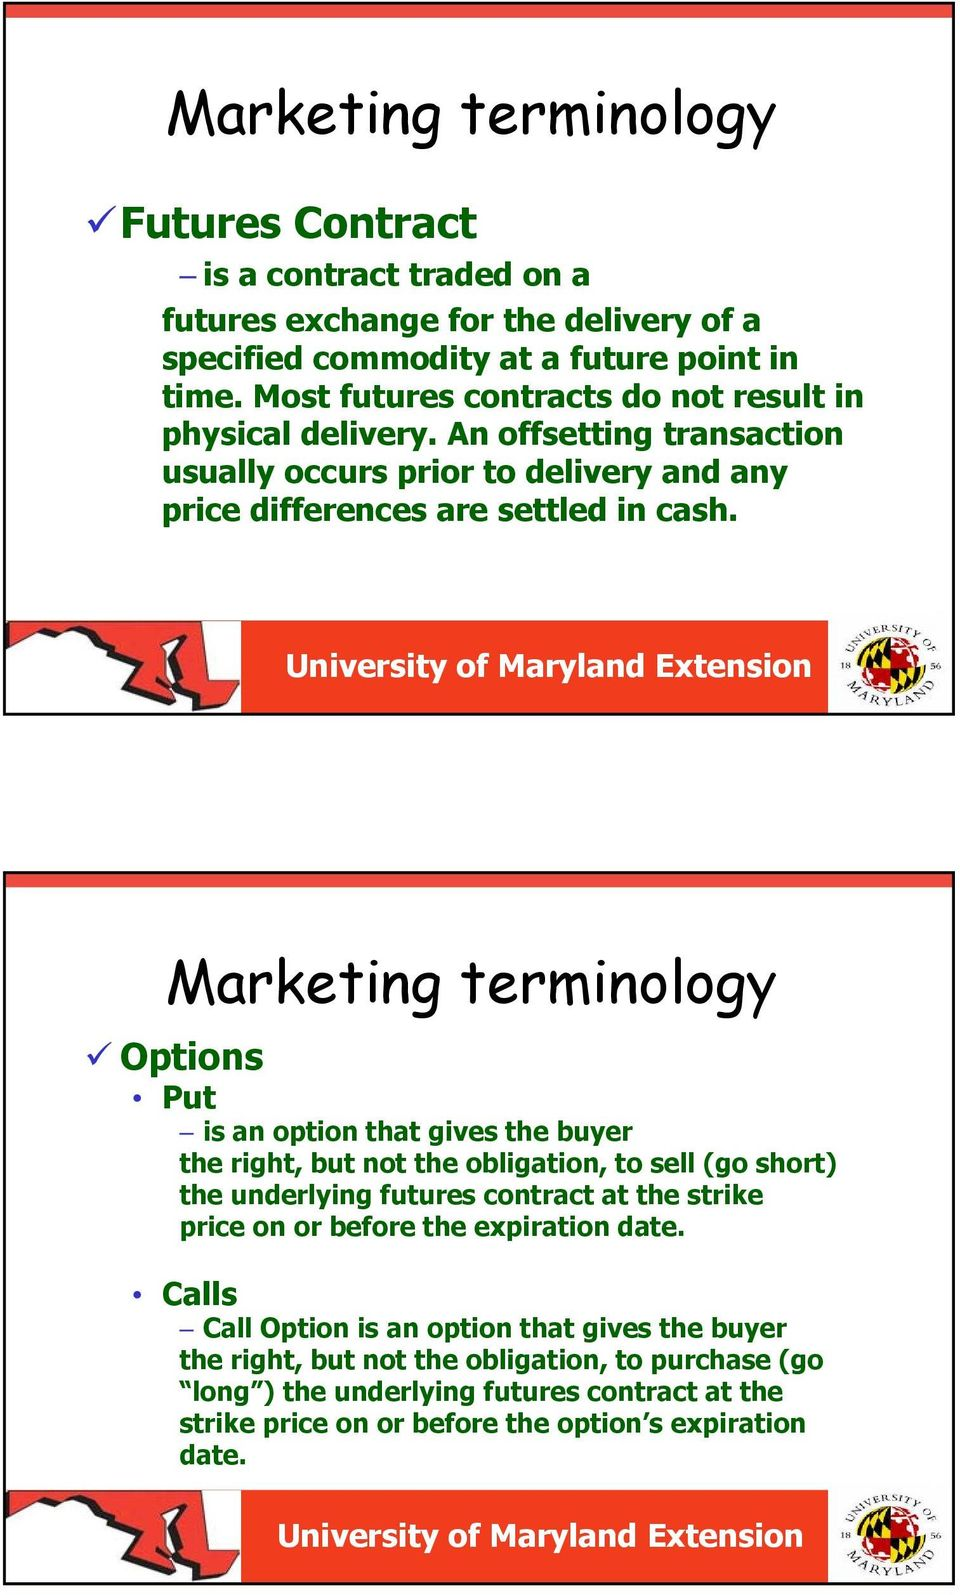 Marketing terminology Options Put is an option that gives the buyer the right, but not the obligation, to sell (go short) the underlying futures contract at the strike price on or